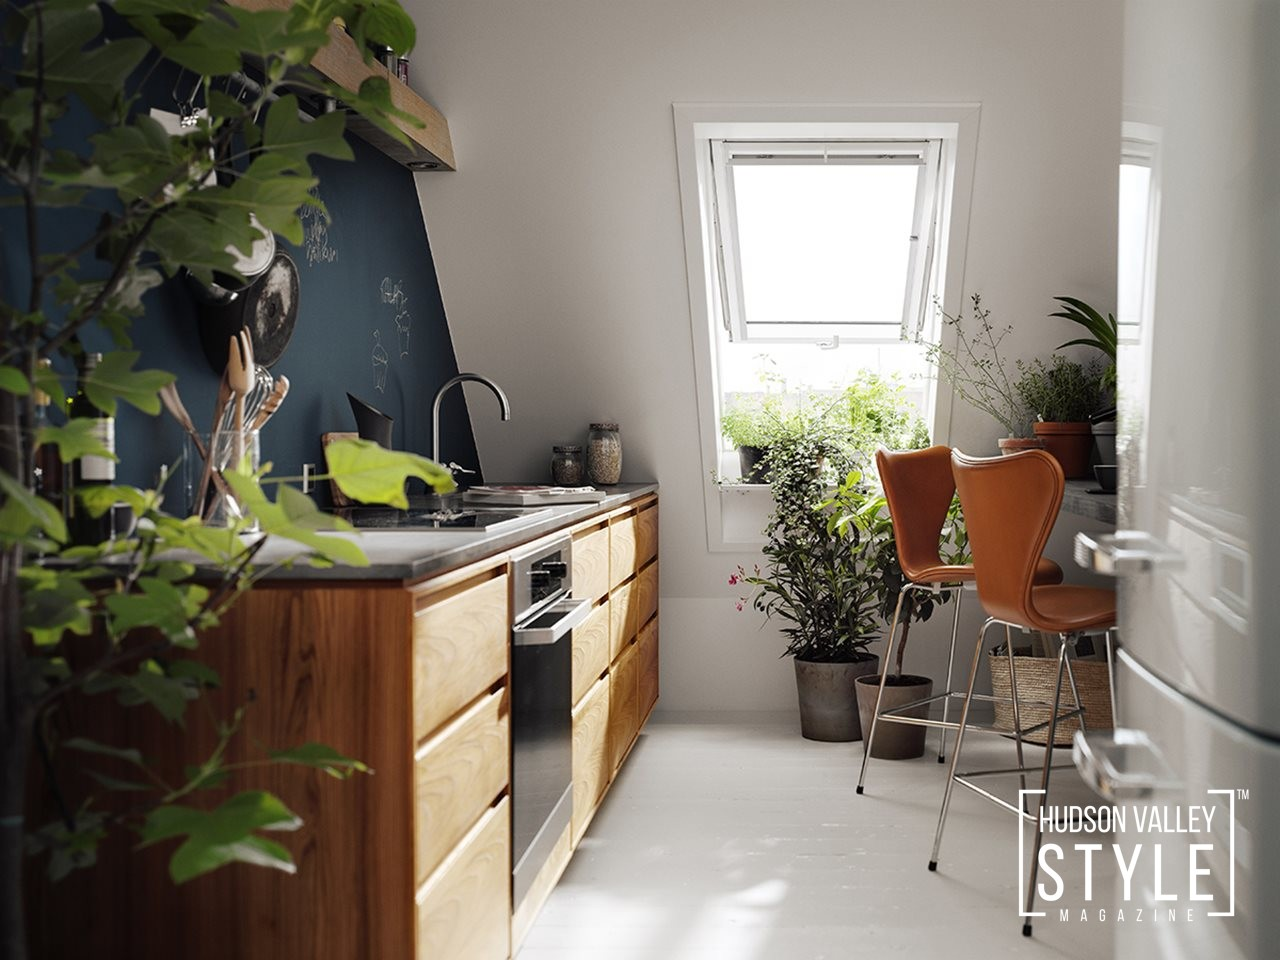 6 ways to turn your home into a natural oasis